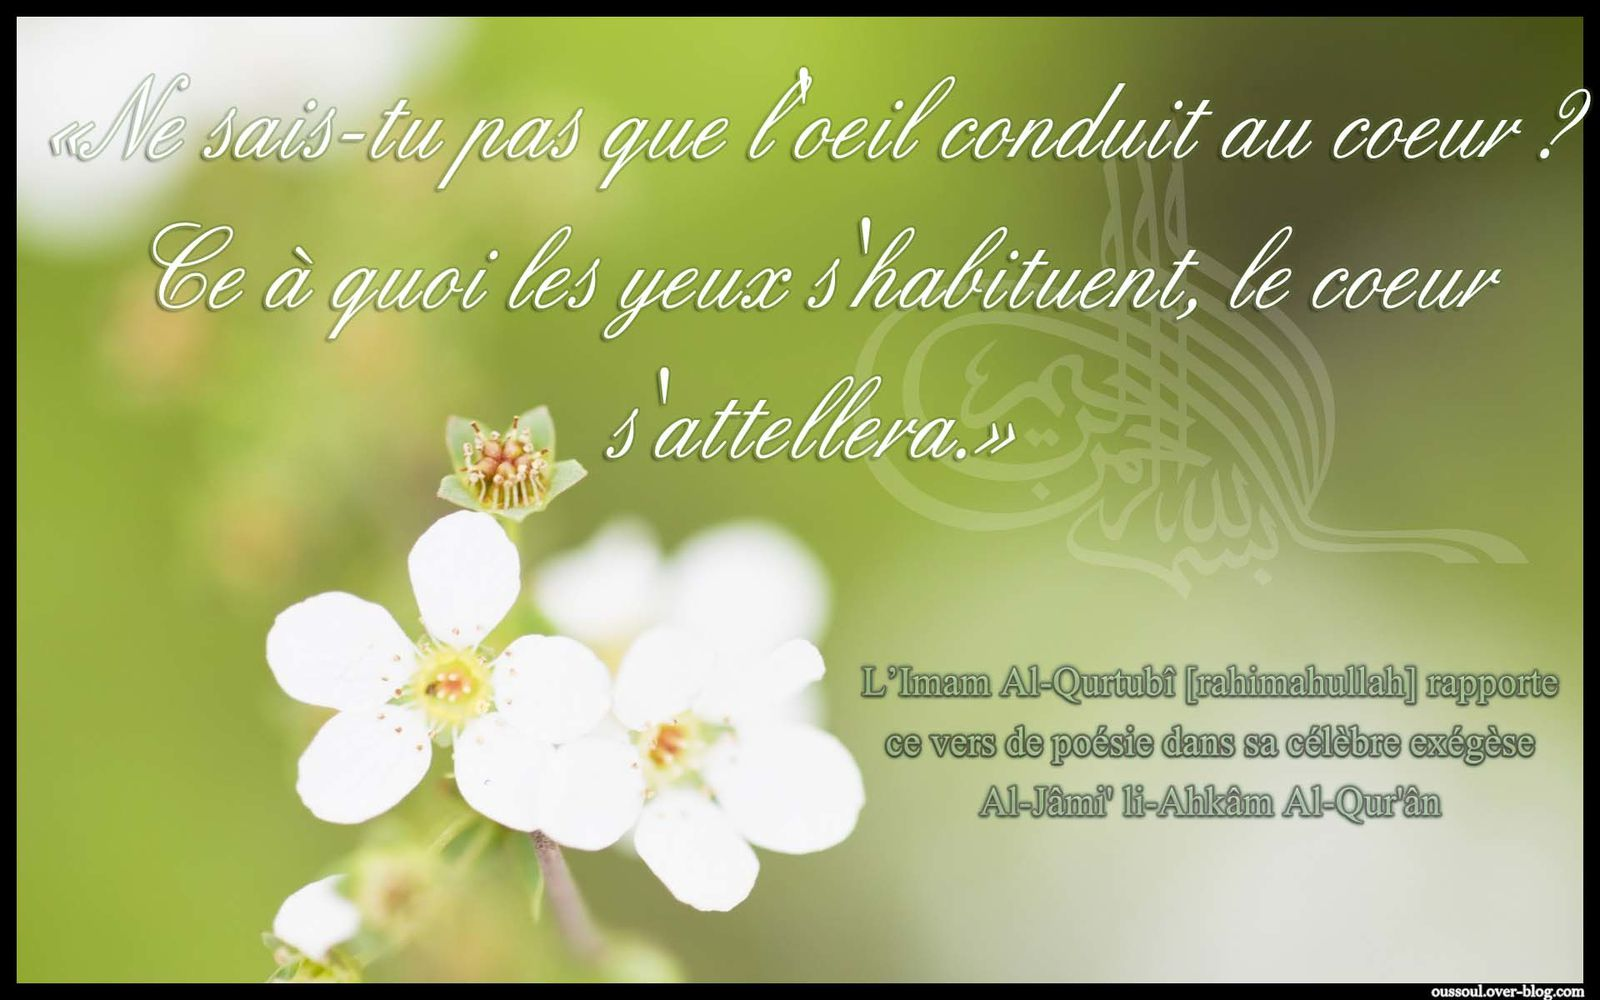 Album Bouquet De Sagesses Rappel Citation Oussoul Aqida